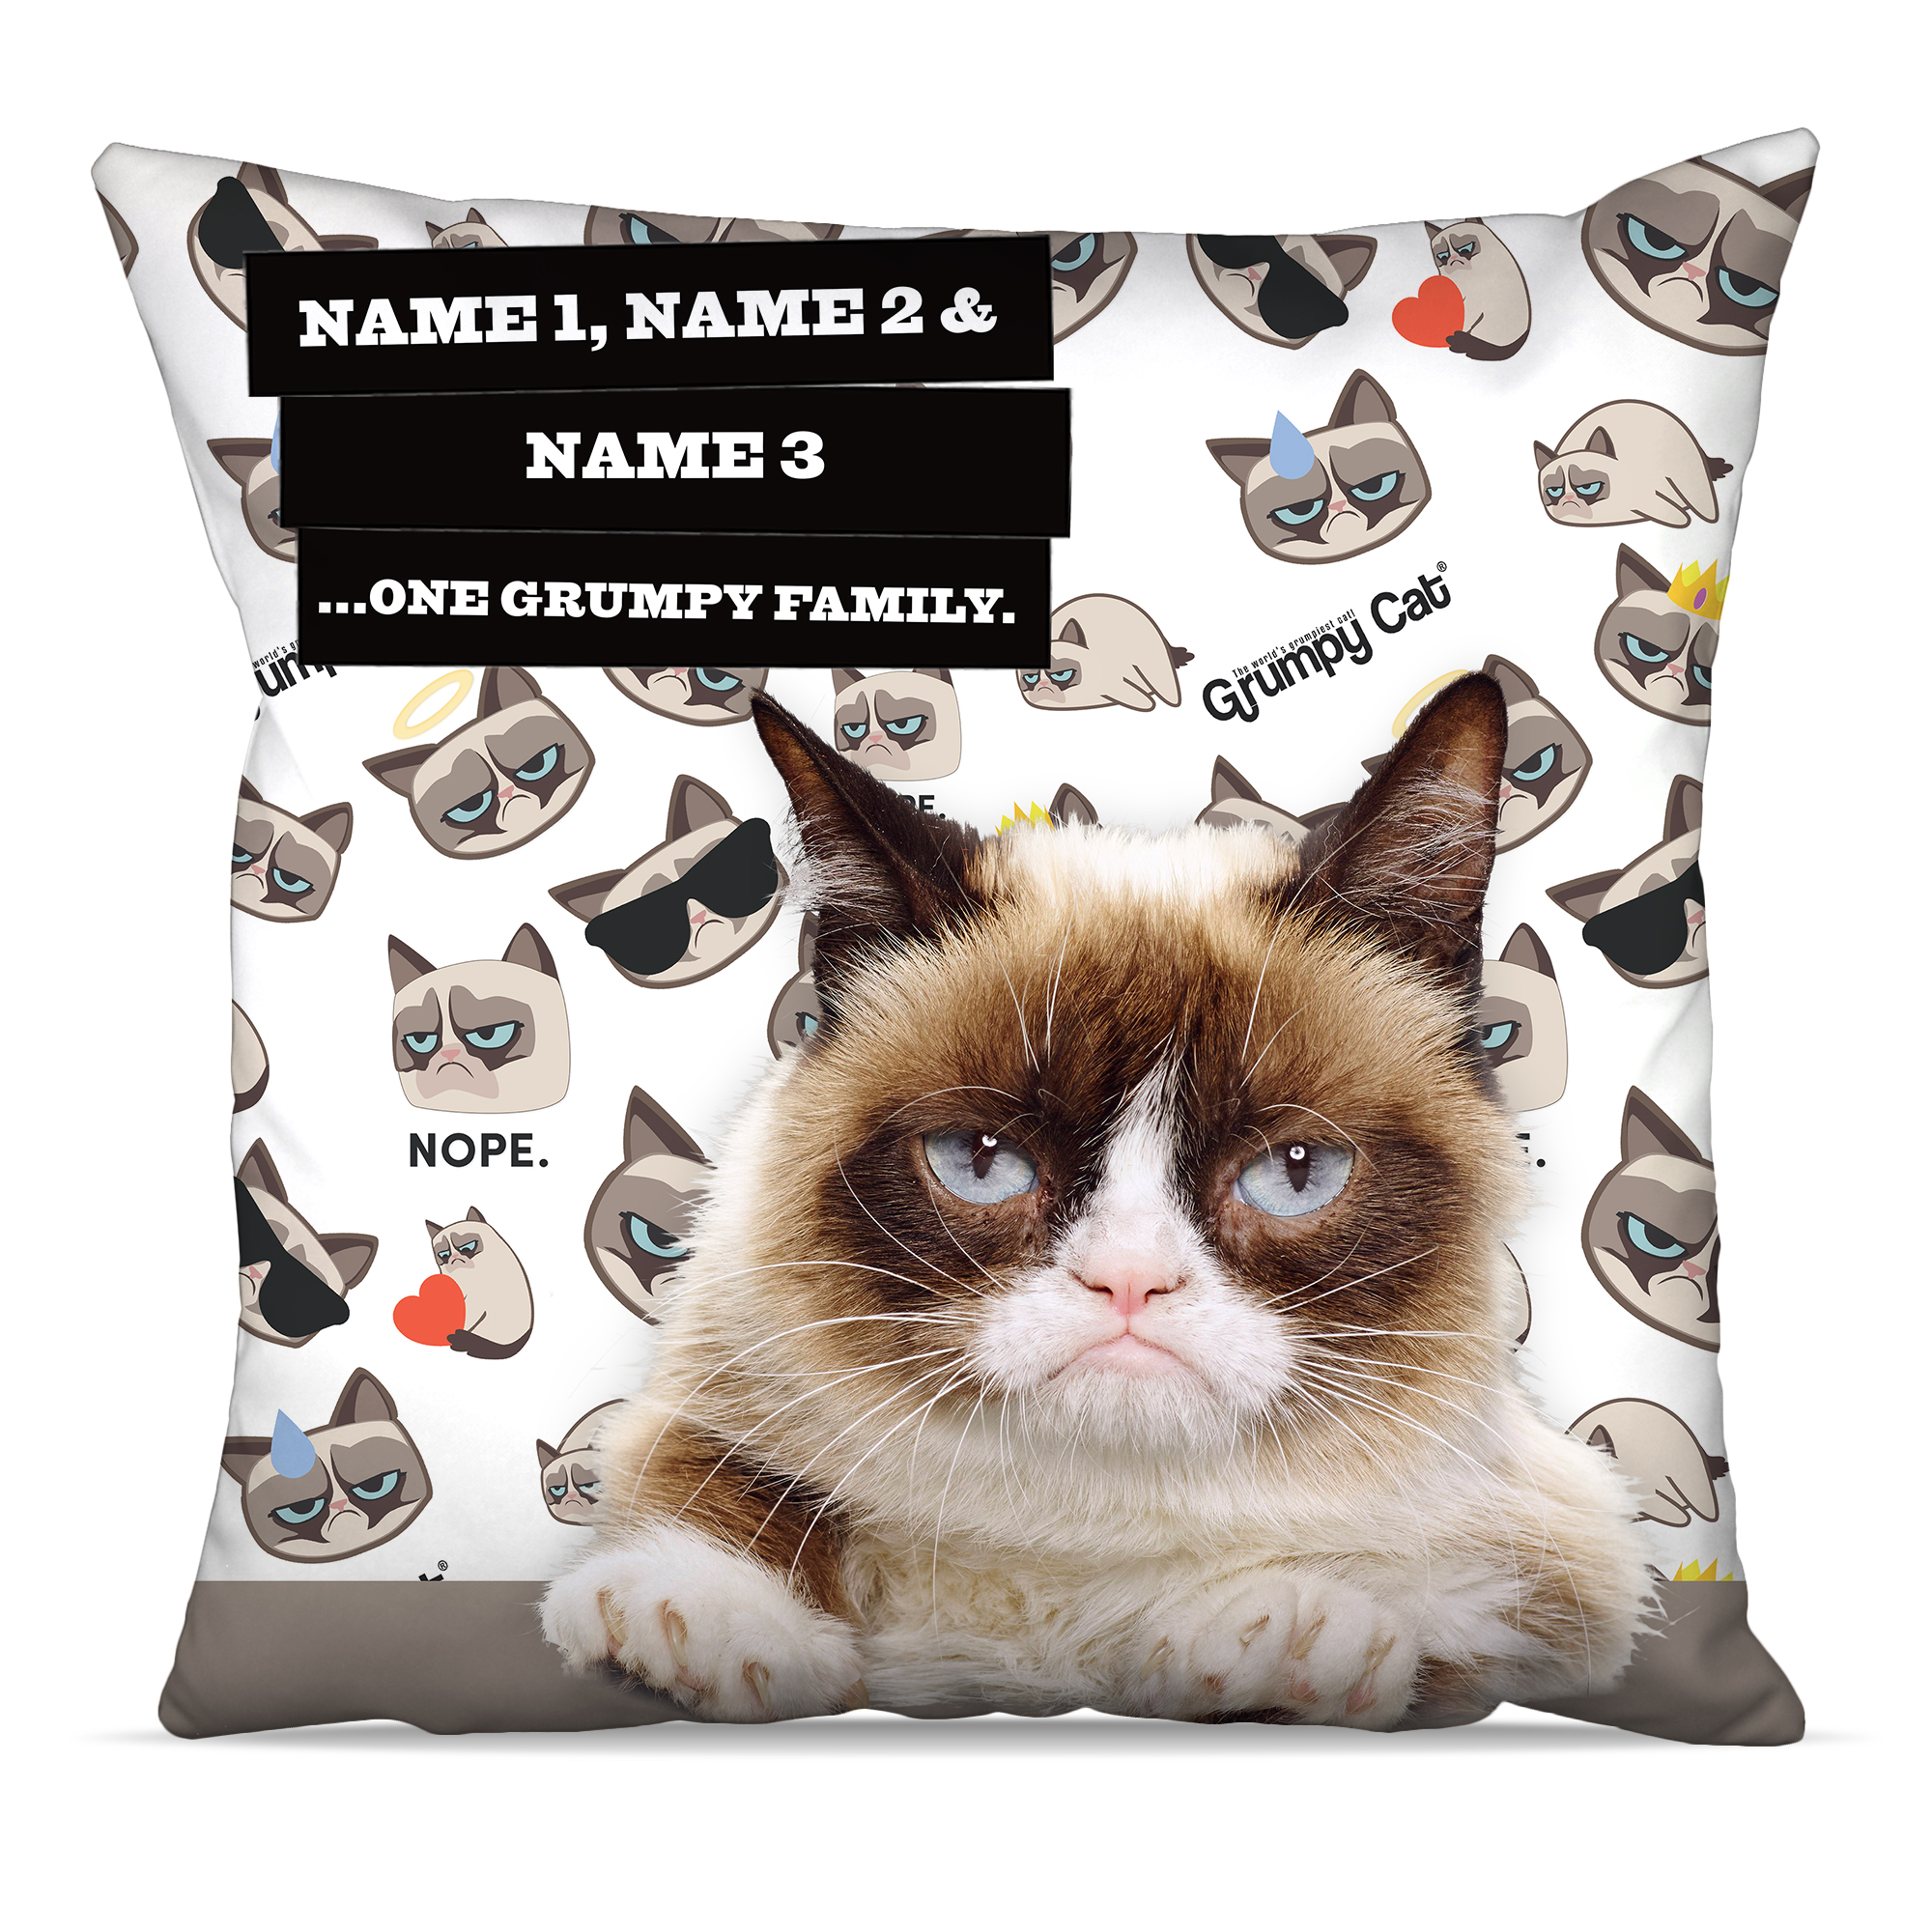 Grumpy Cat - Grumpy Family Emoji Cushion